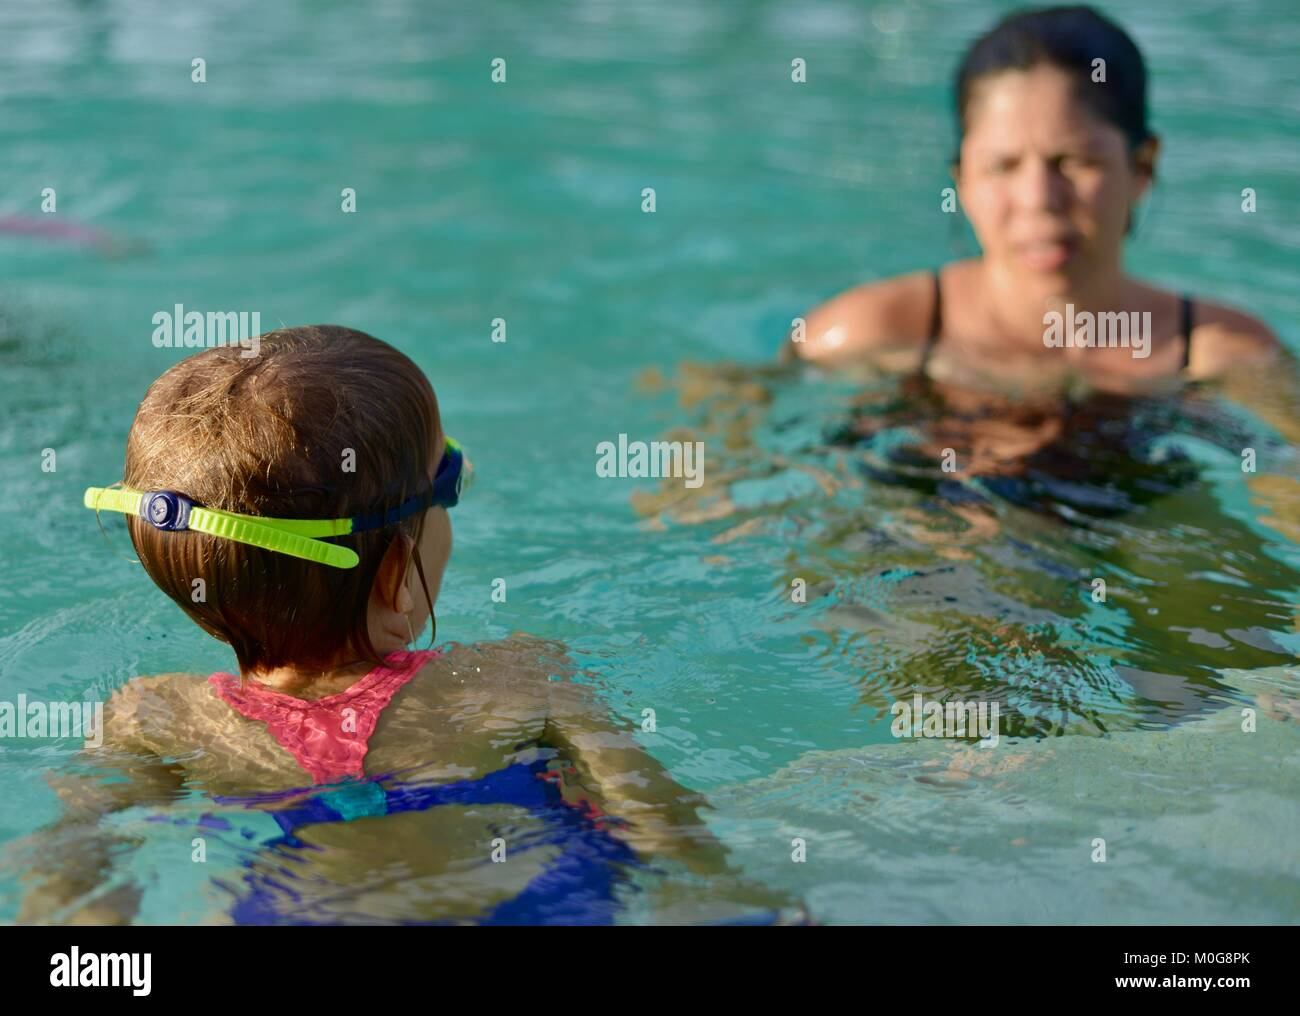 Mère fille apprend à nager, piscine Riverway, Townsville, Queensland, Australie Photo Stock